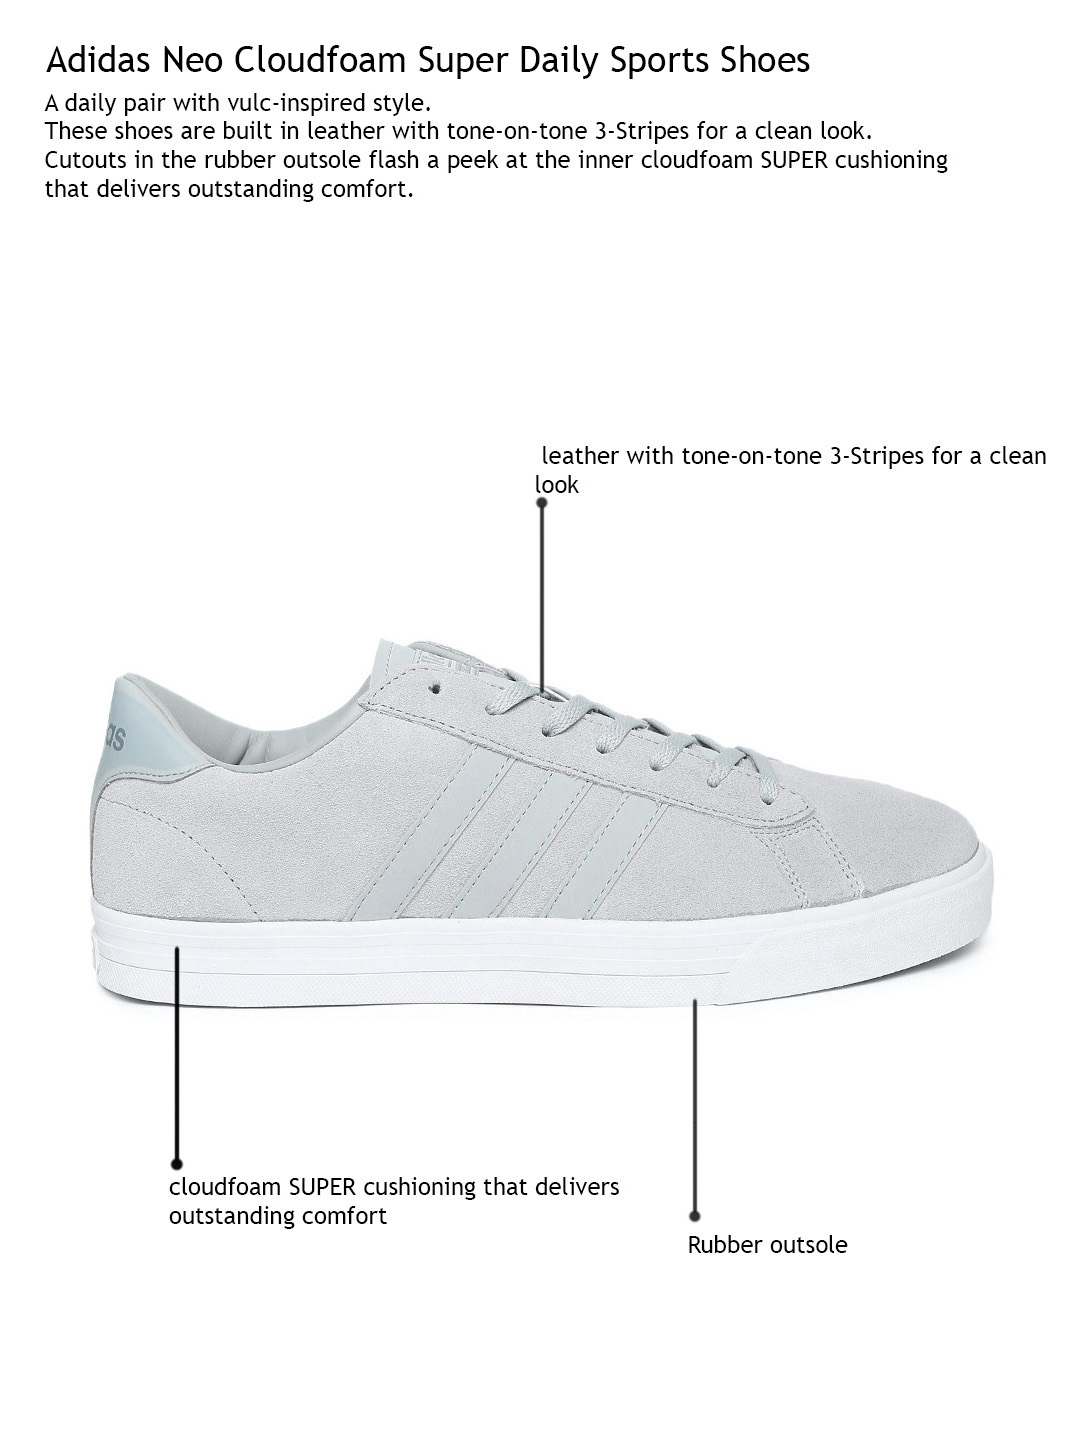 Buy ADIDAS NEO Men Grey Leather Cloudfoam Super Daily Sneakers ... f4f4d99d0